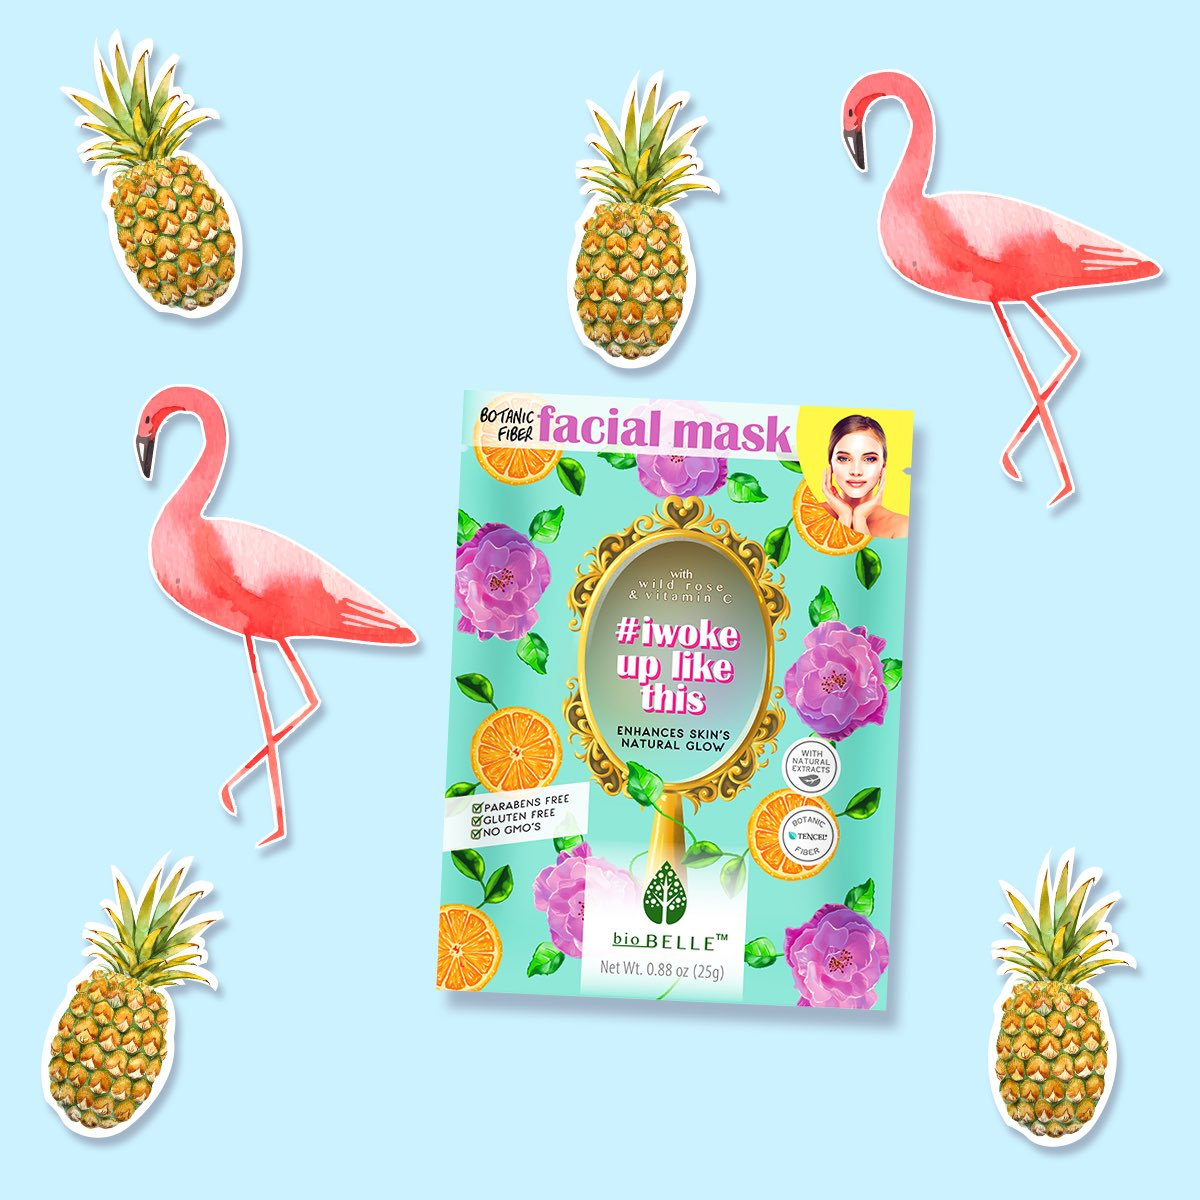 Get the Summer Glow you&#39;ve always wished with our #iwokeuplikethis Vitamin C mask Happy #selfcare Sunday beauties! <br>http://pic.twitter.com/MfUC2wVZ5K